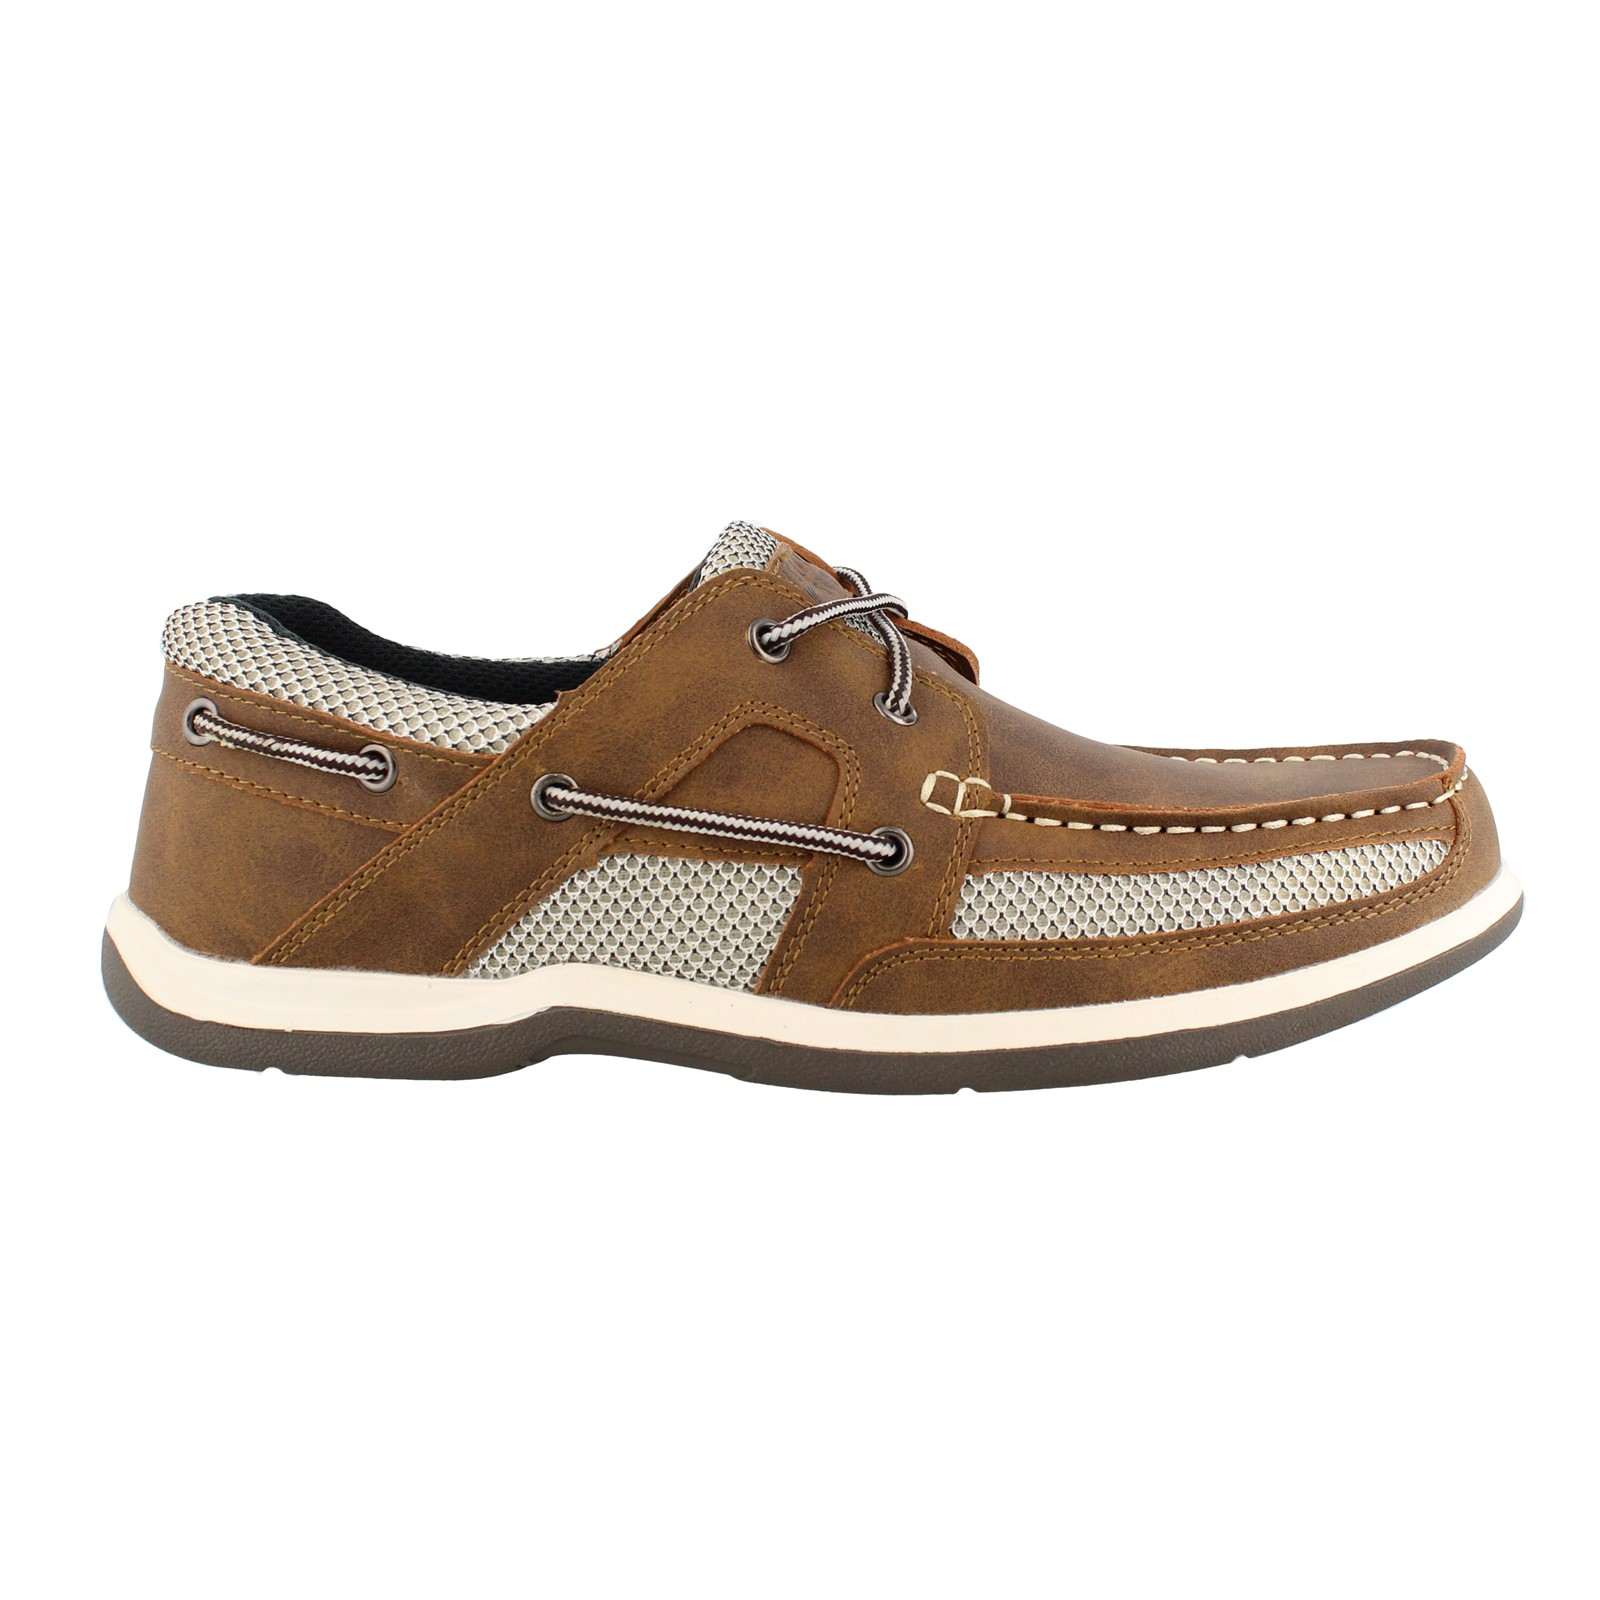 Men's Island Surf Company, Mast Boat Shoes